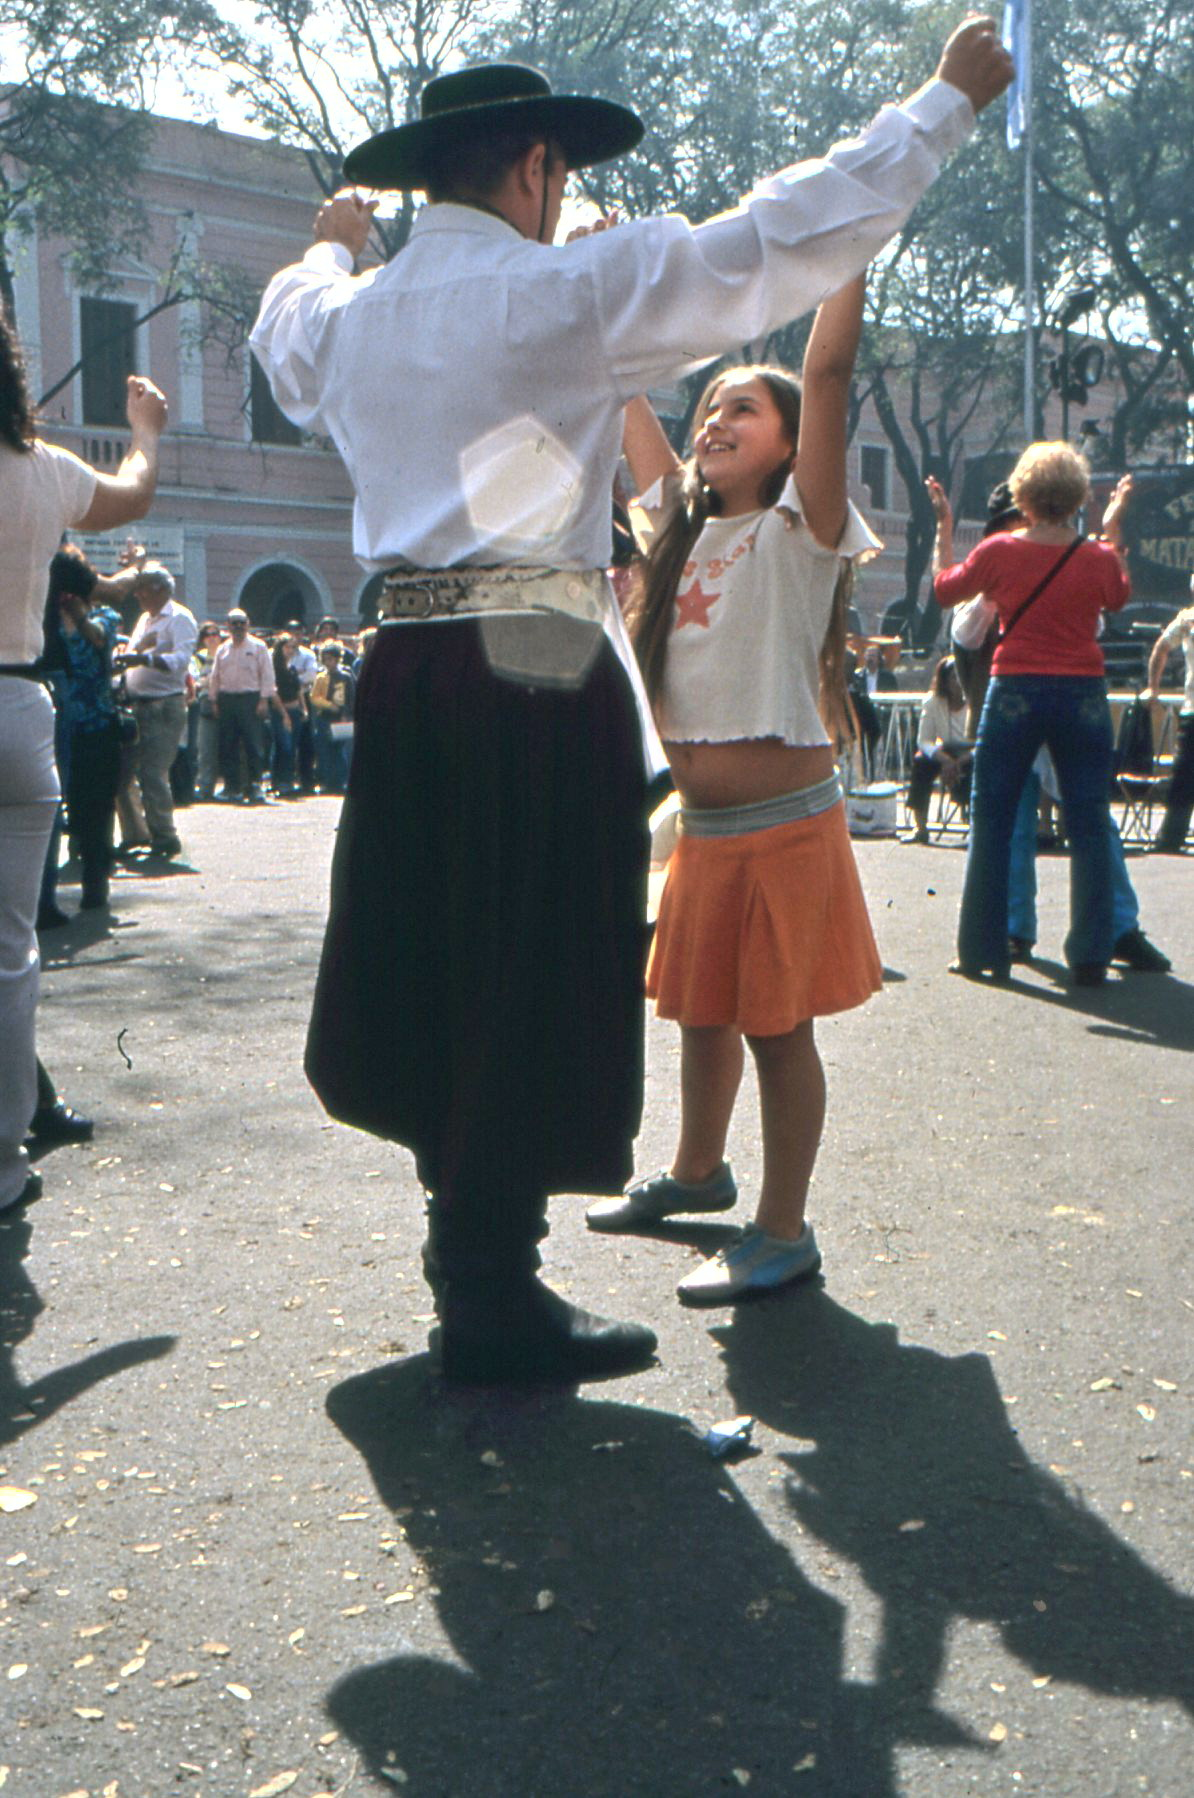 Aside from the sarteja, the most symbolic part of the Feria is the street dancing. This young girl knew all the steps, and was thrilled to be chosen as a gaucho's partner.